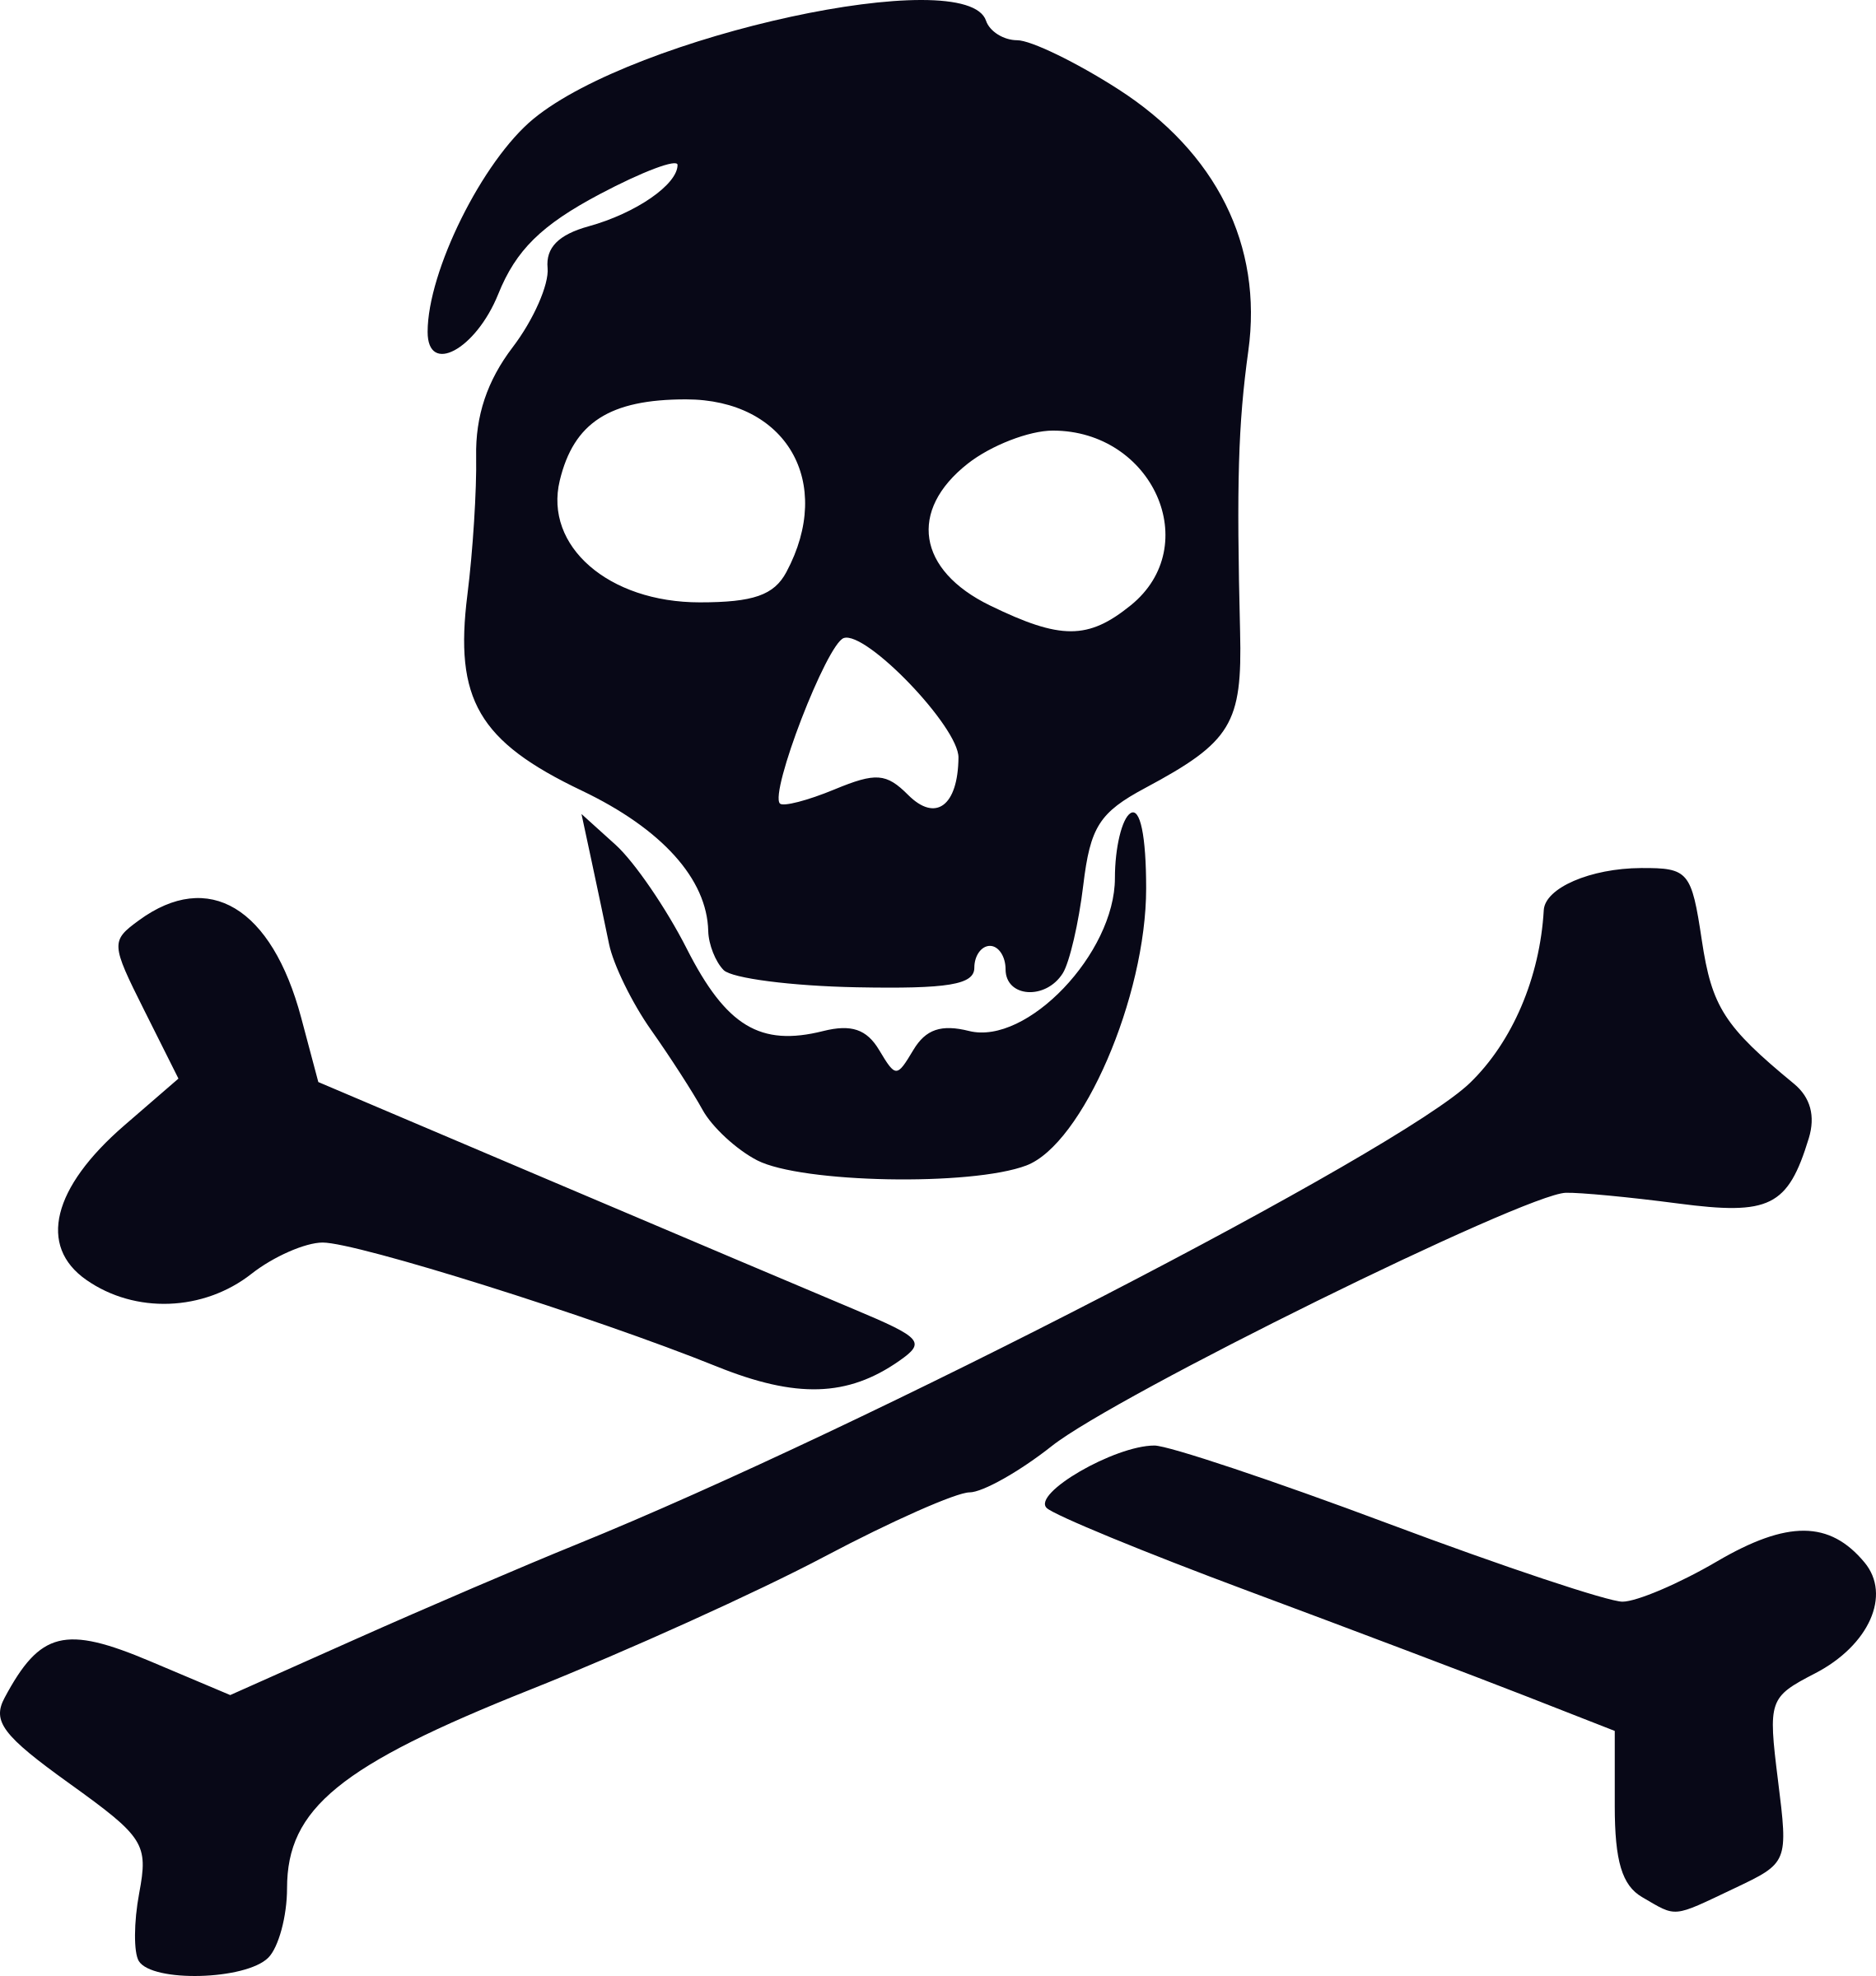 Skull and bones png. Sketch icons free downloads